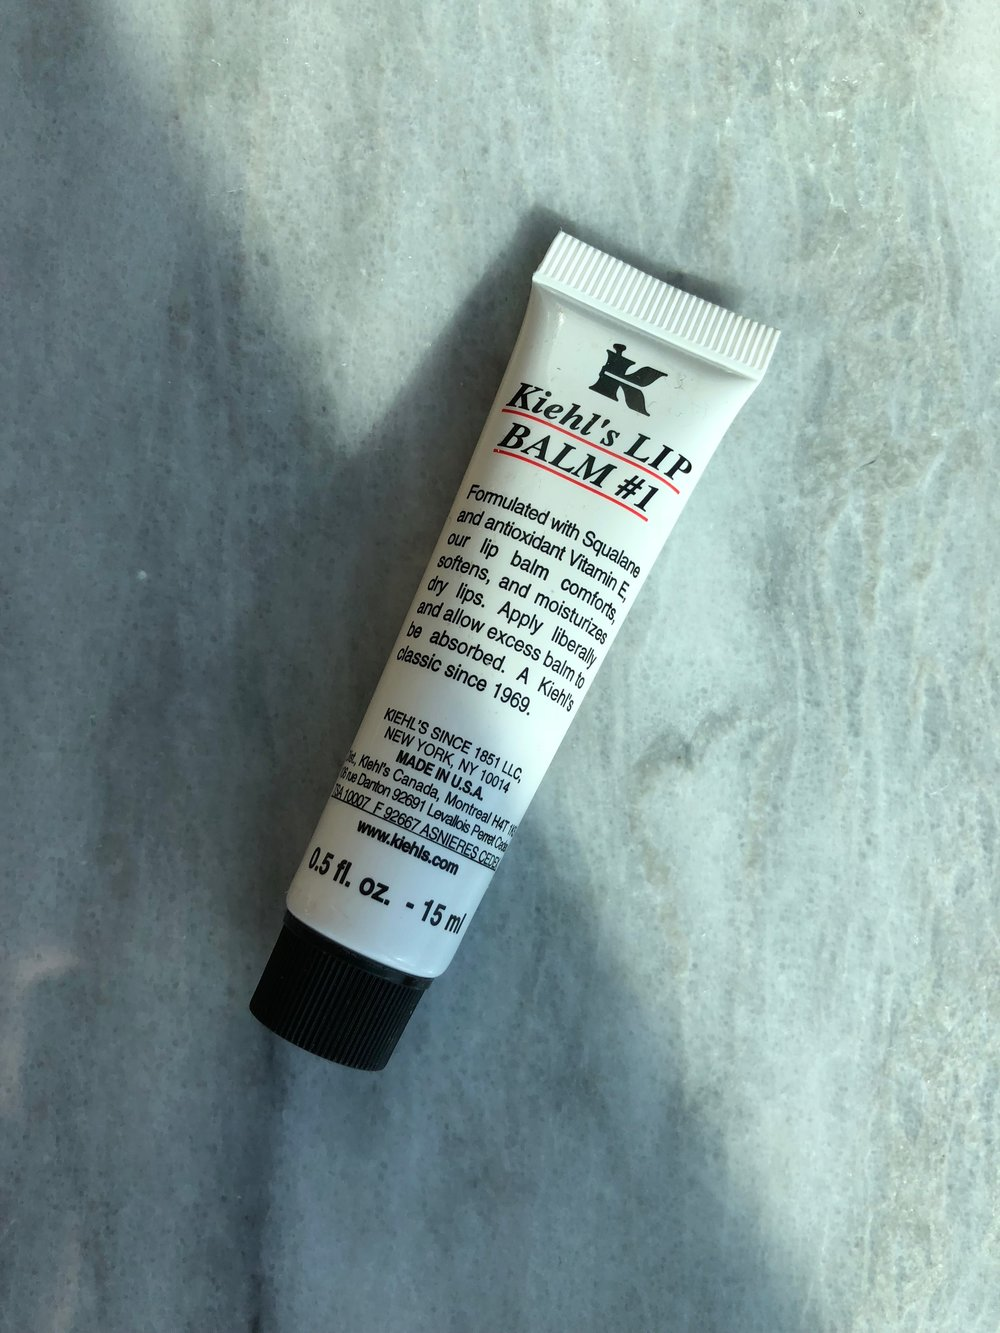 Skincare Product Review Skincarma Kiehls Baby Lip Balm Iconic 1 Was First Introduced To Customers Of The Original Flagship Store